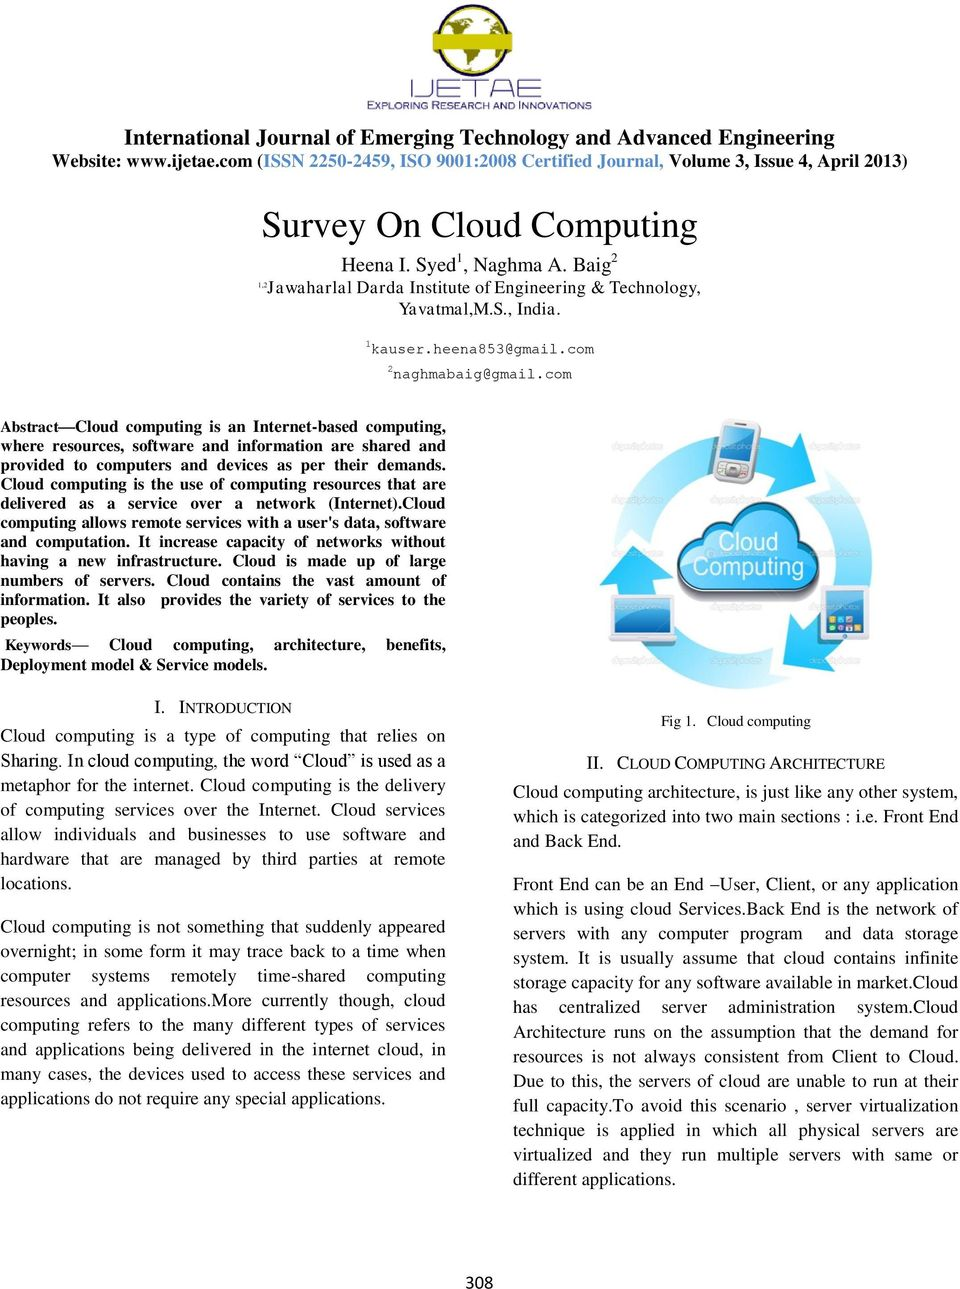 Cloud computing is the use of computing resources that are delivered as a service over a network (Internet).Cloud computing allows remote services with a user's data, software and computation.